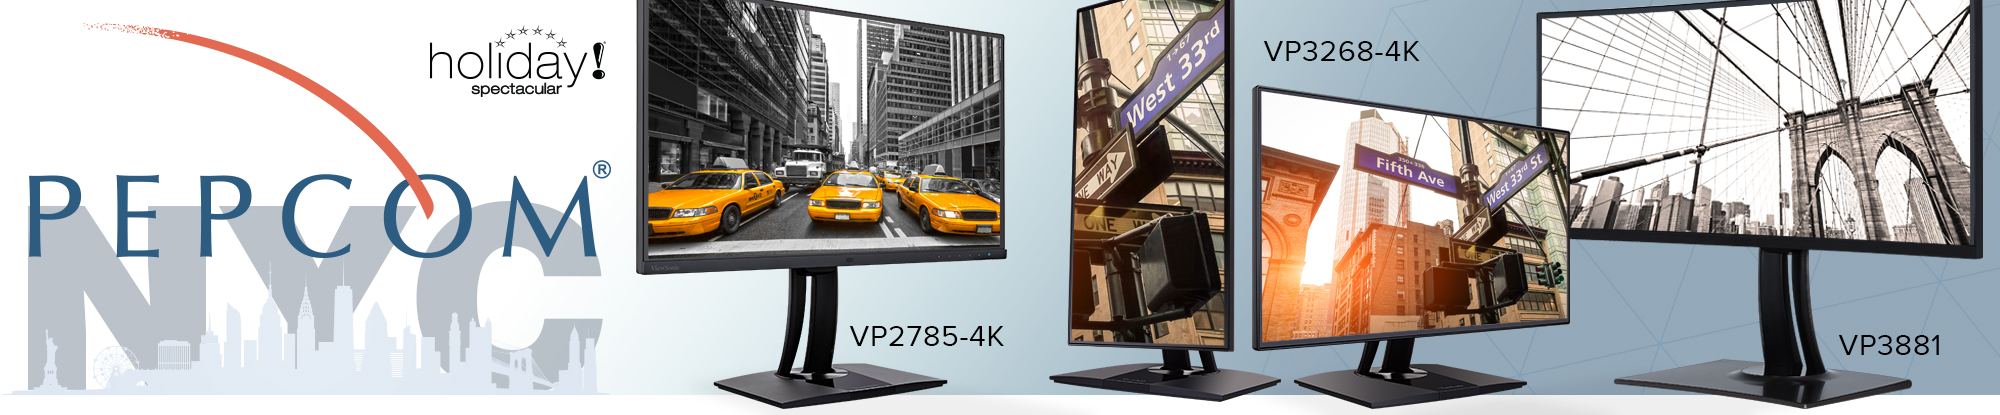 ViewSonic Introduces Pro Monitors for Color-Critical Applications